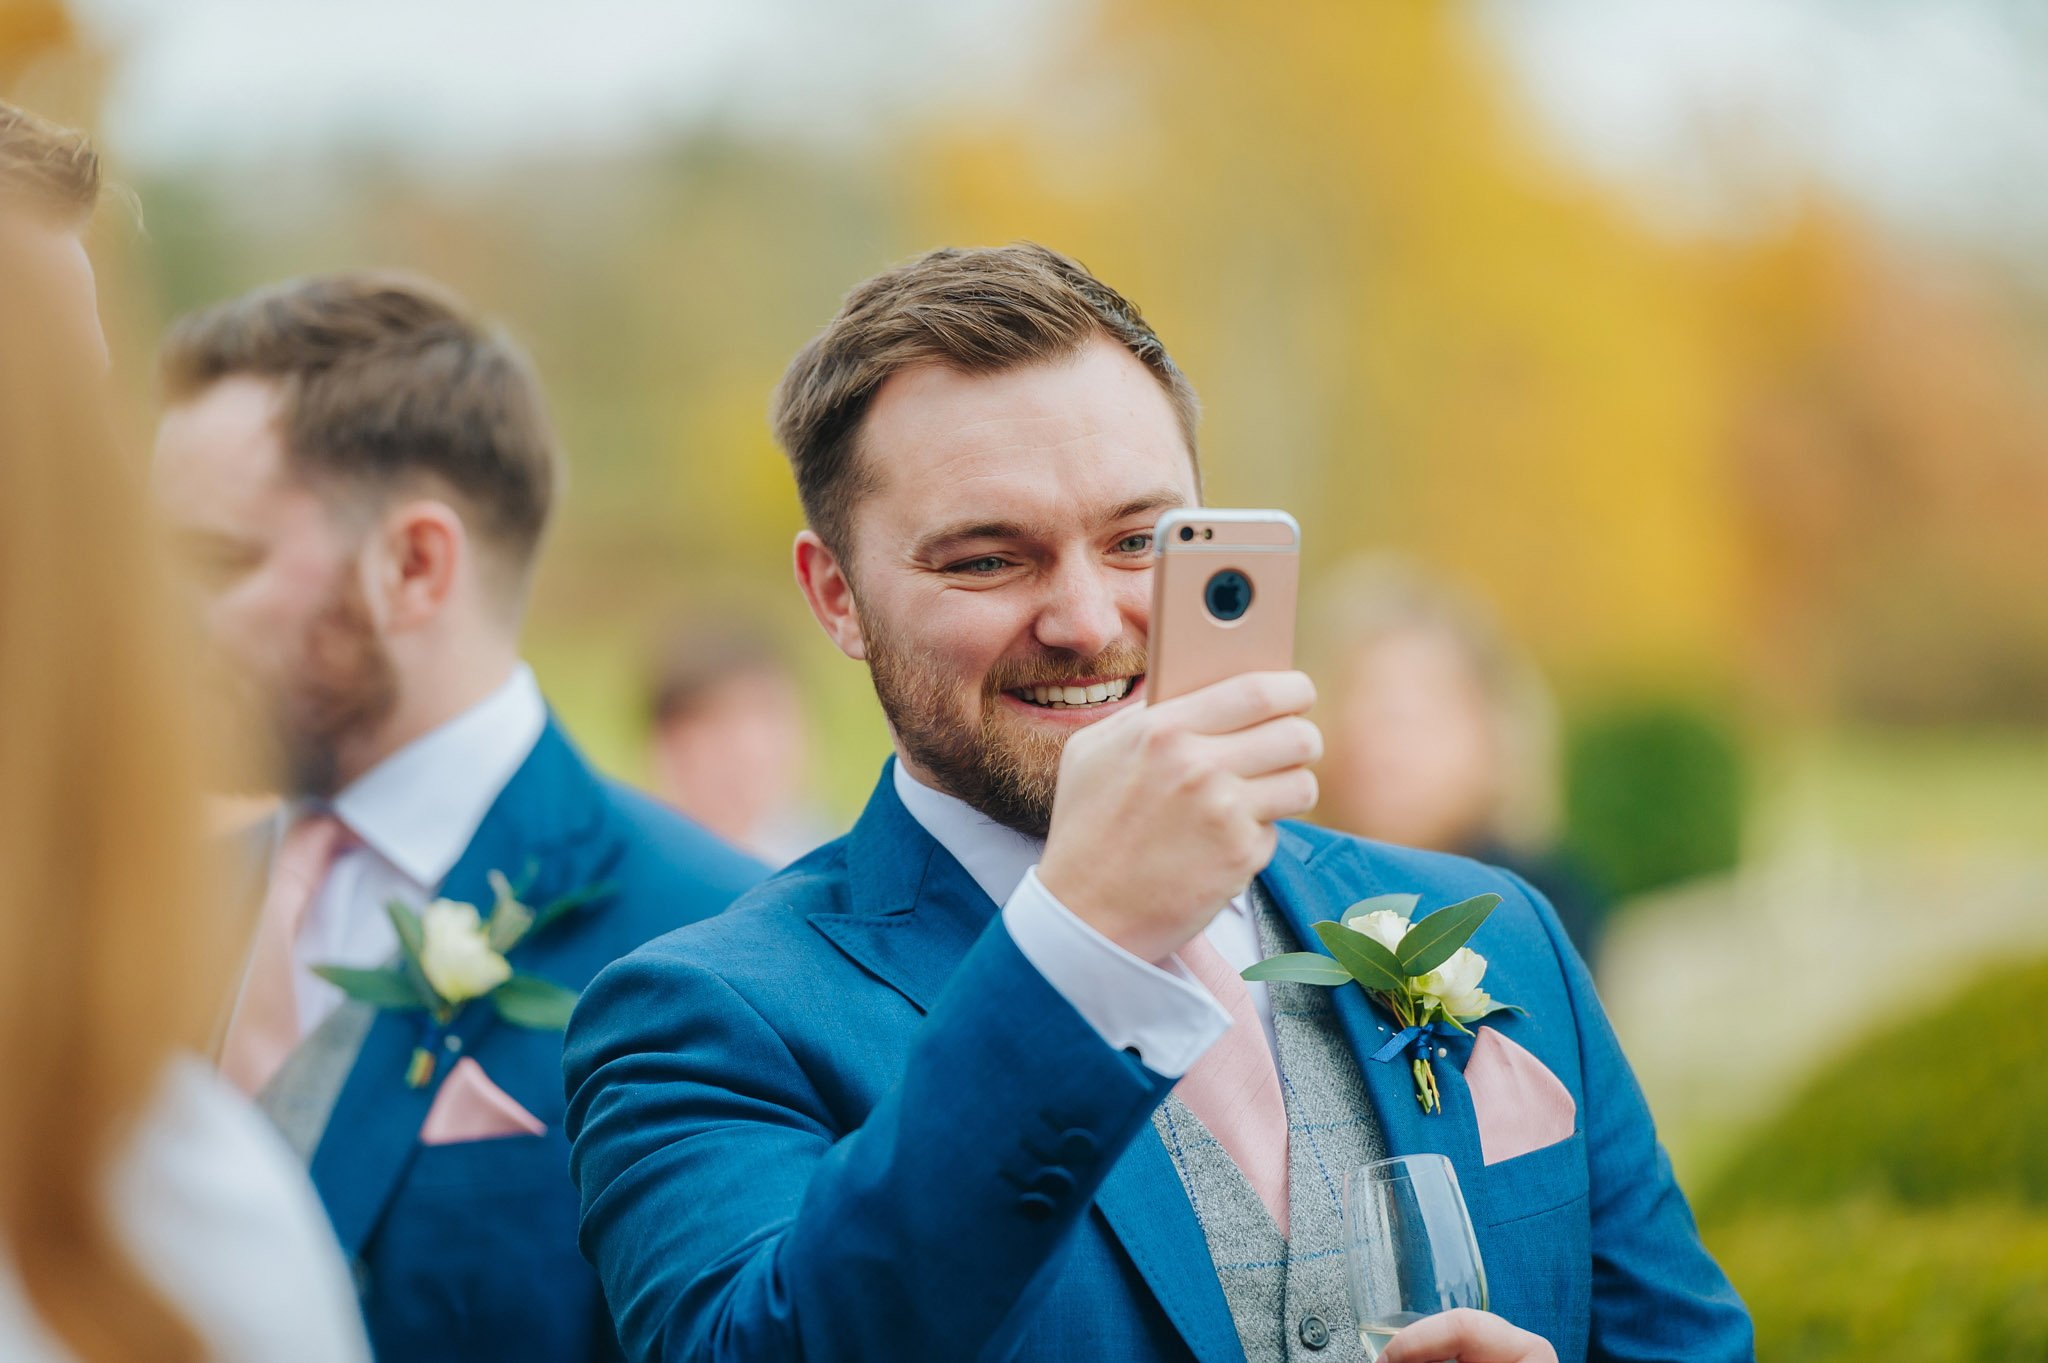 lemore manor wedding herefordshire 59 - Lemore Manor wedding, Herefordshire - West Midlands | Sadie + Ken